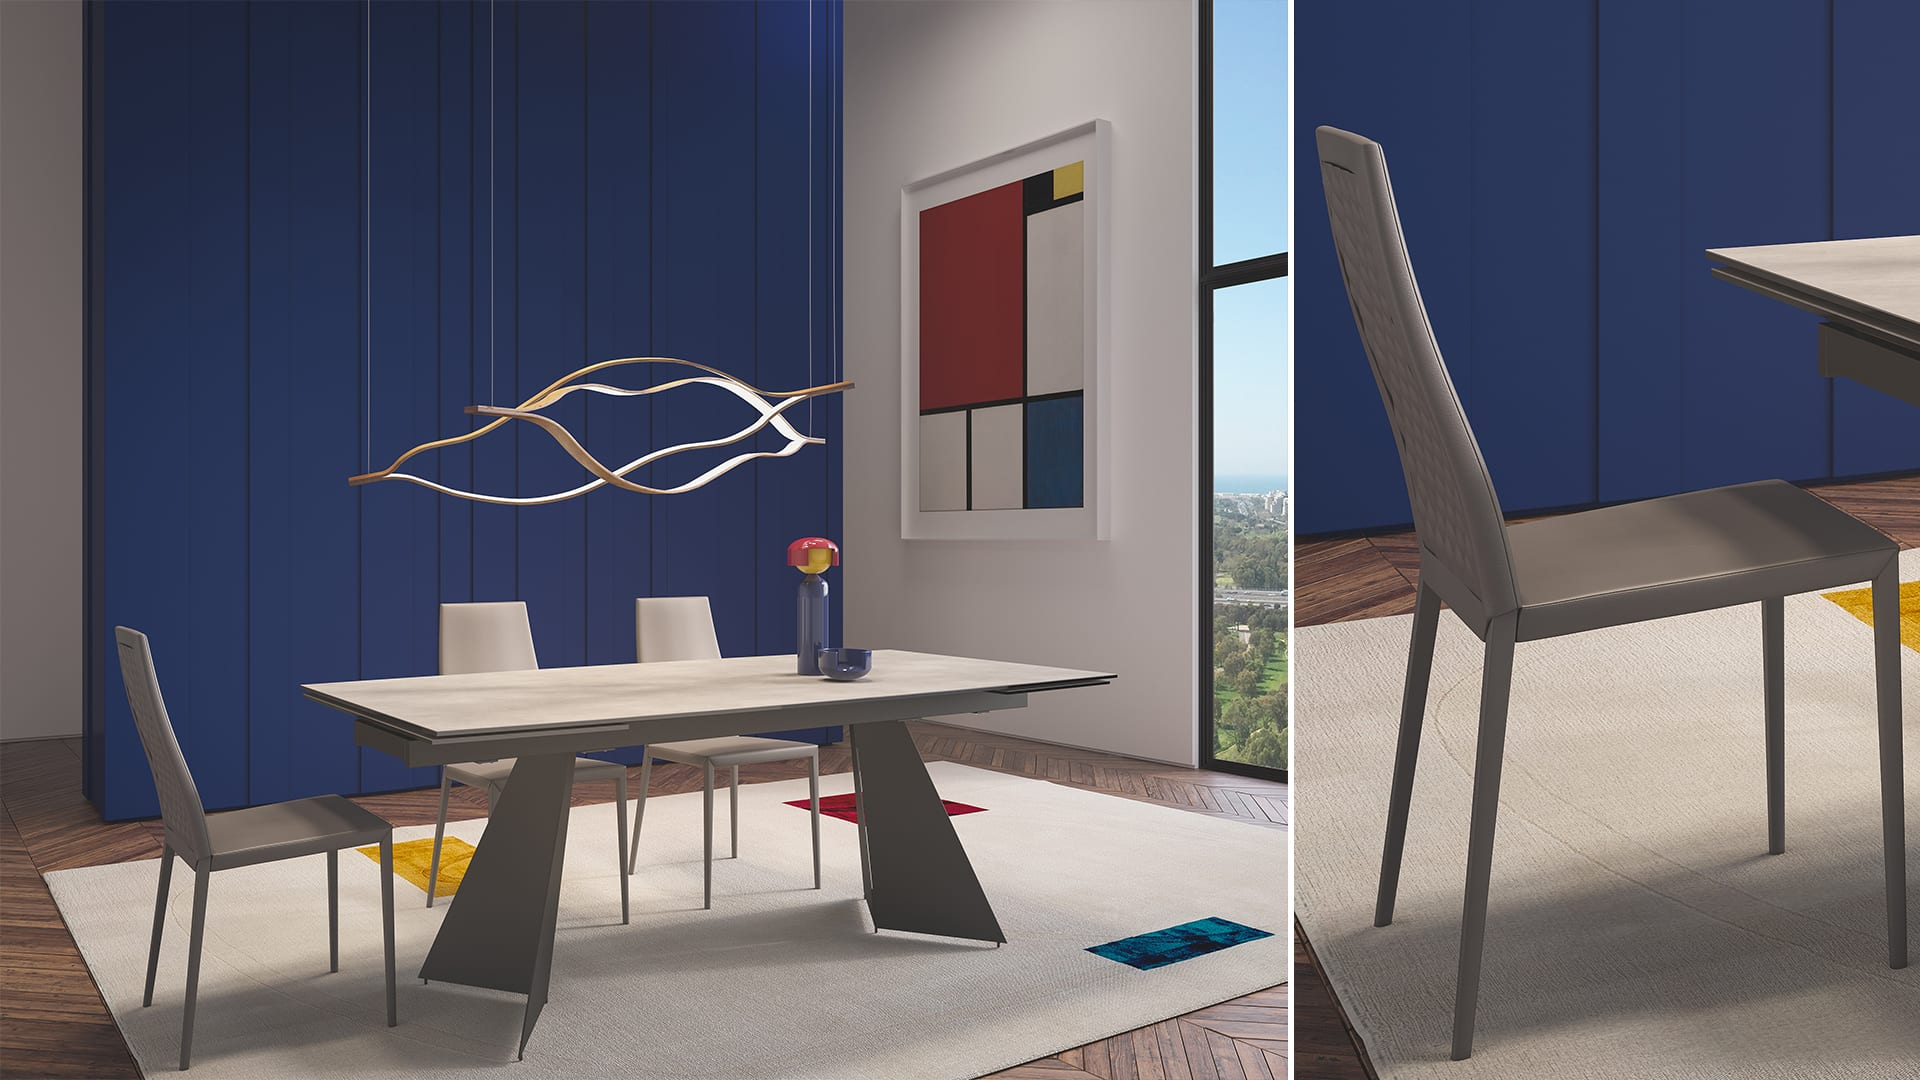 Maayan-Golan_Architectural-Visualization_product-visualization_dining-room-set_rossetto-furniture_02